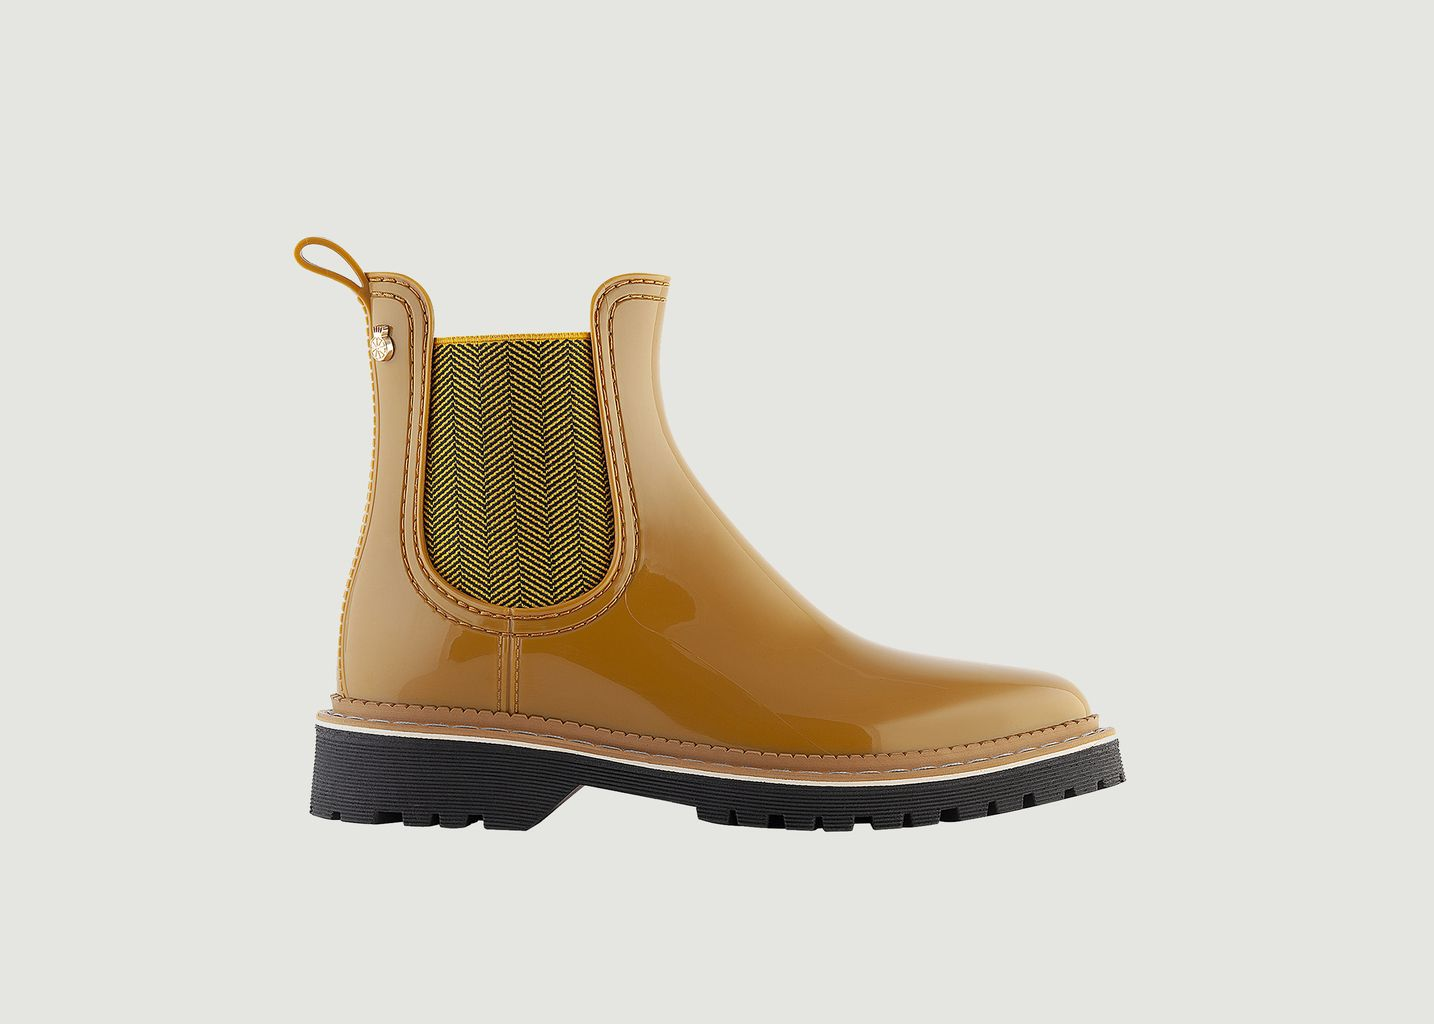 Bottines de pluie Lakisha  - Lemon Jelly